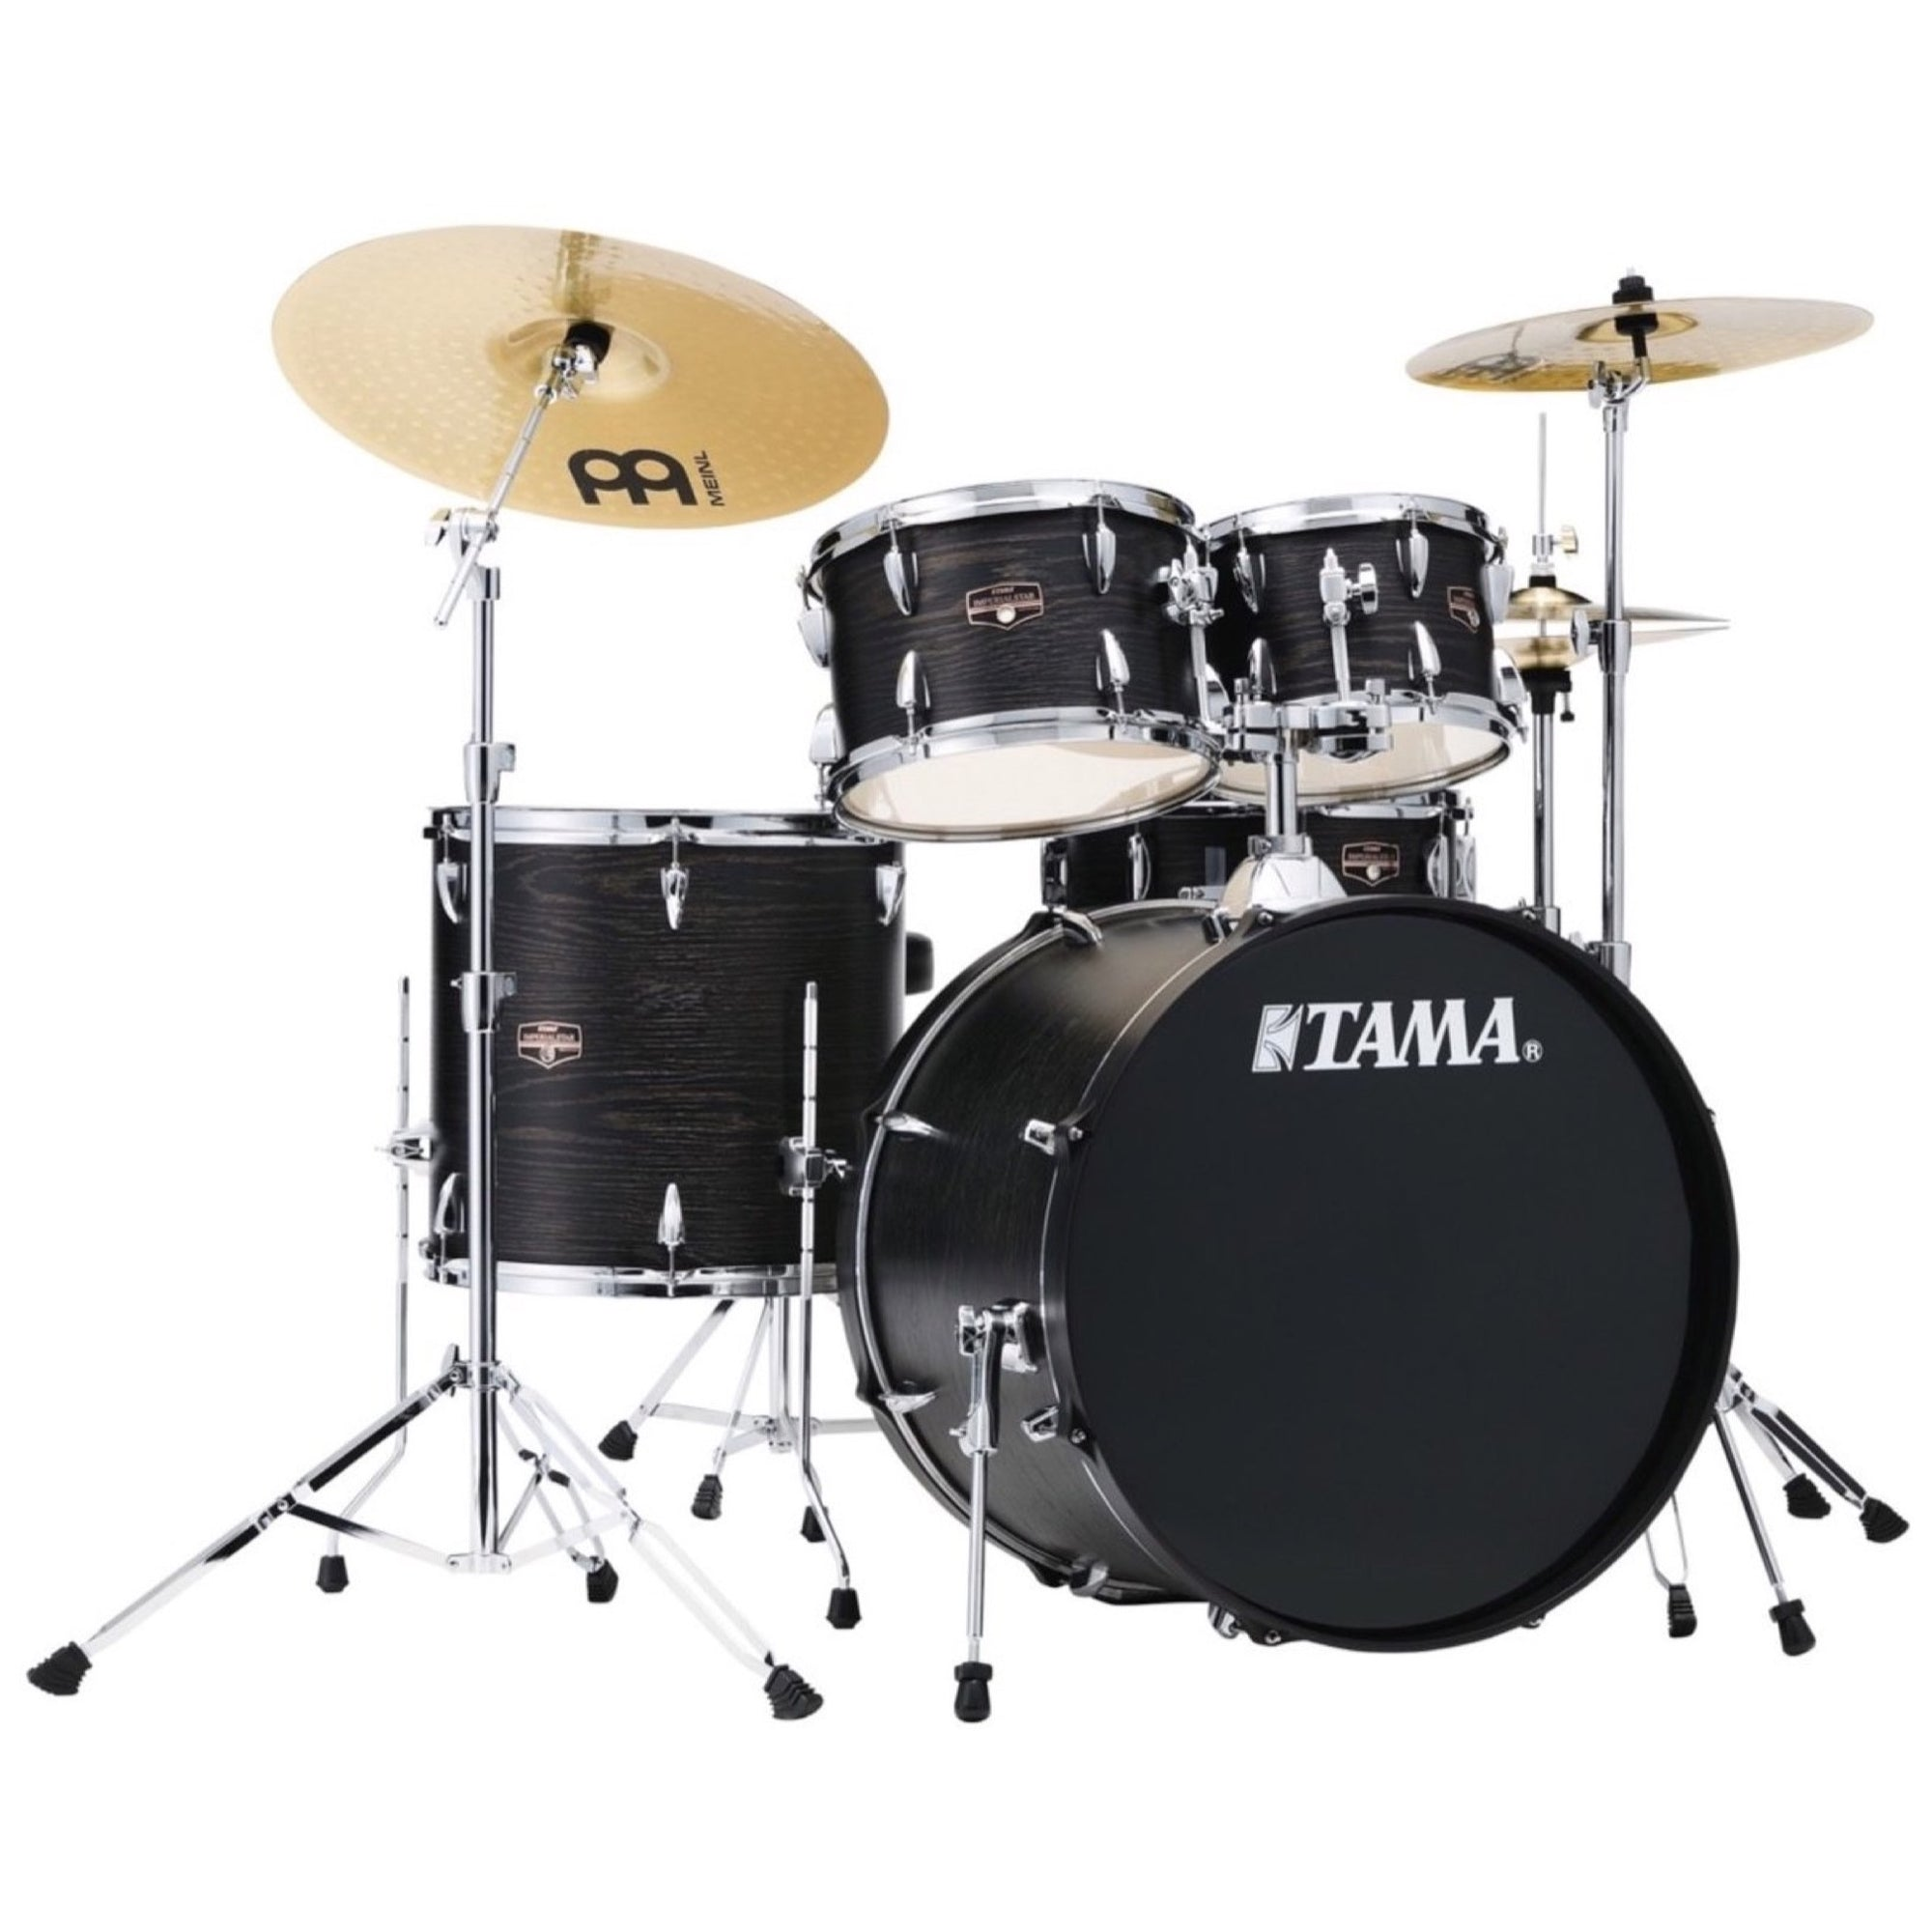 Tama IE52C Imperialstar Drum Kit, 5-Piece (with Meinl Cymbals), Black Oak